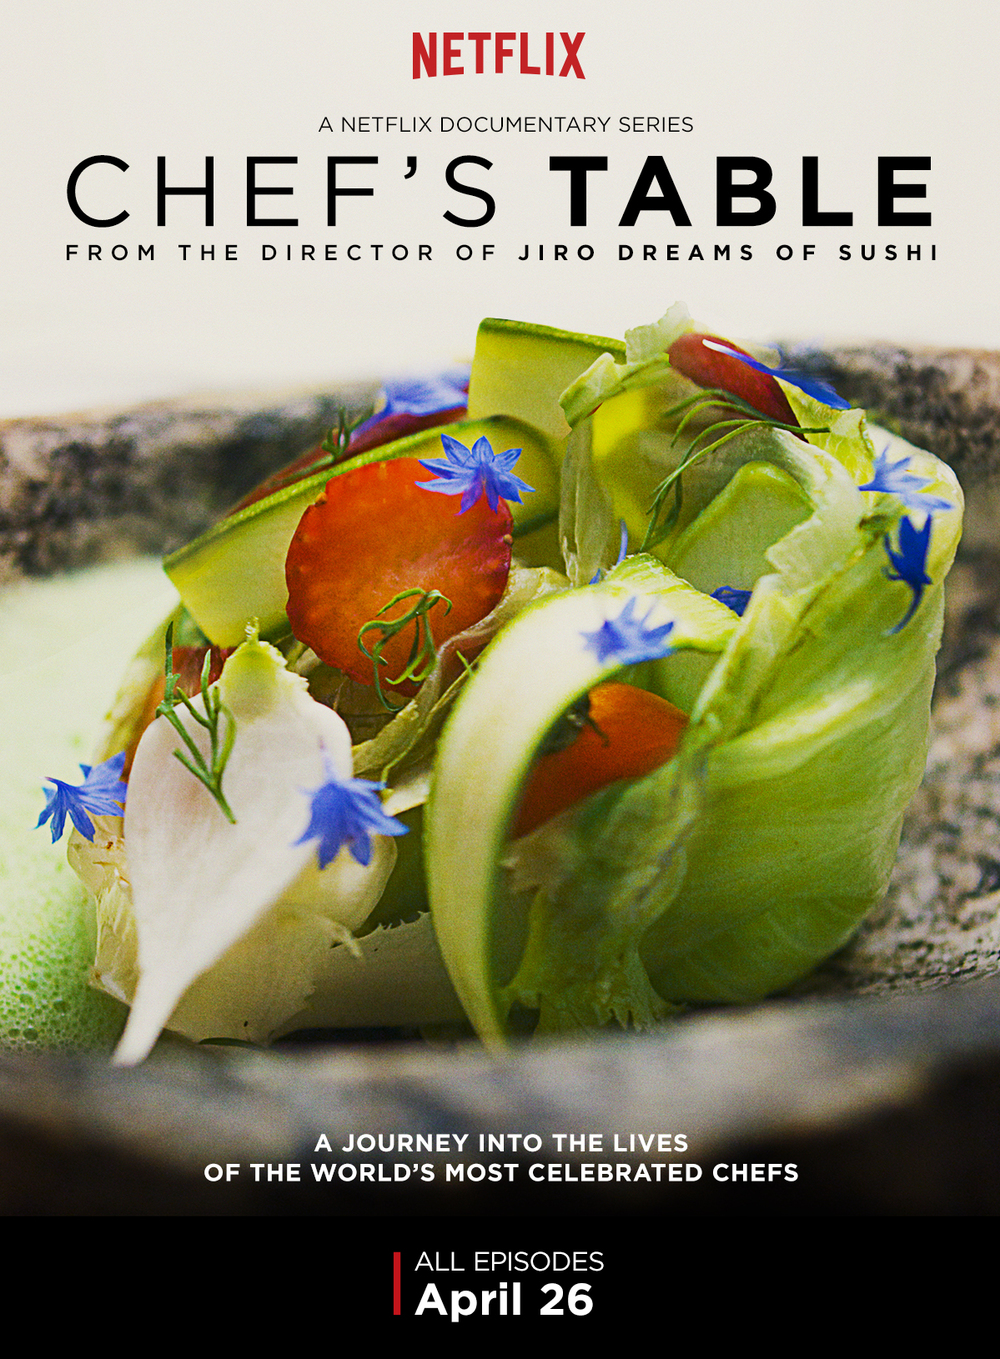 ChefsTable_Dish02_Vertical_KeyArt_US.jpg